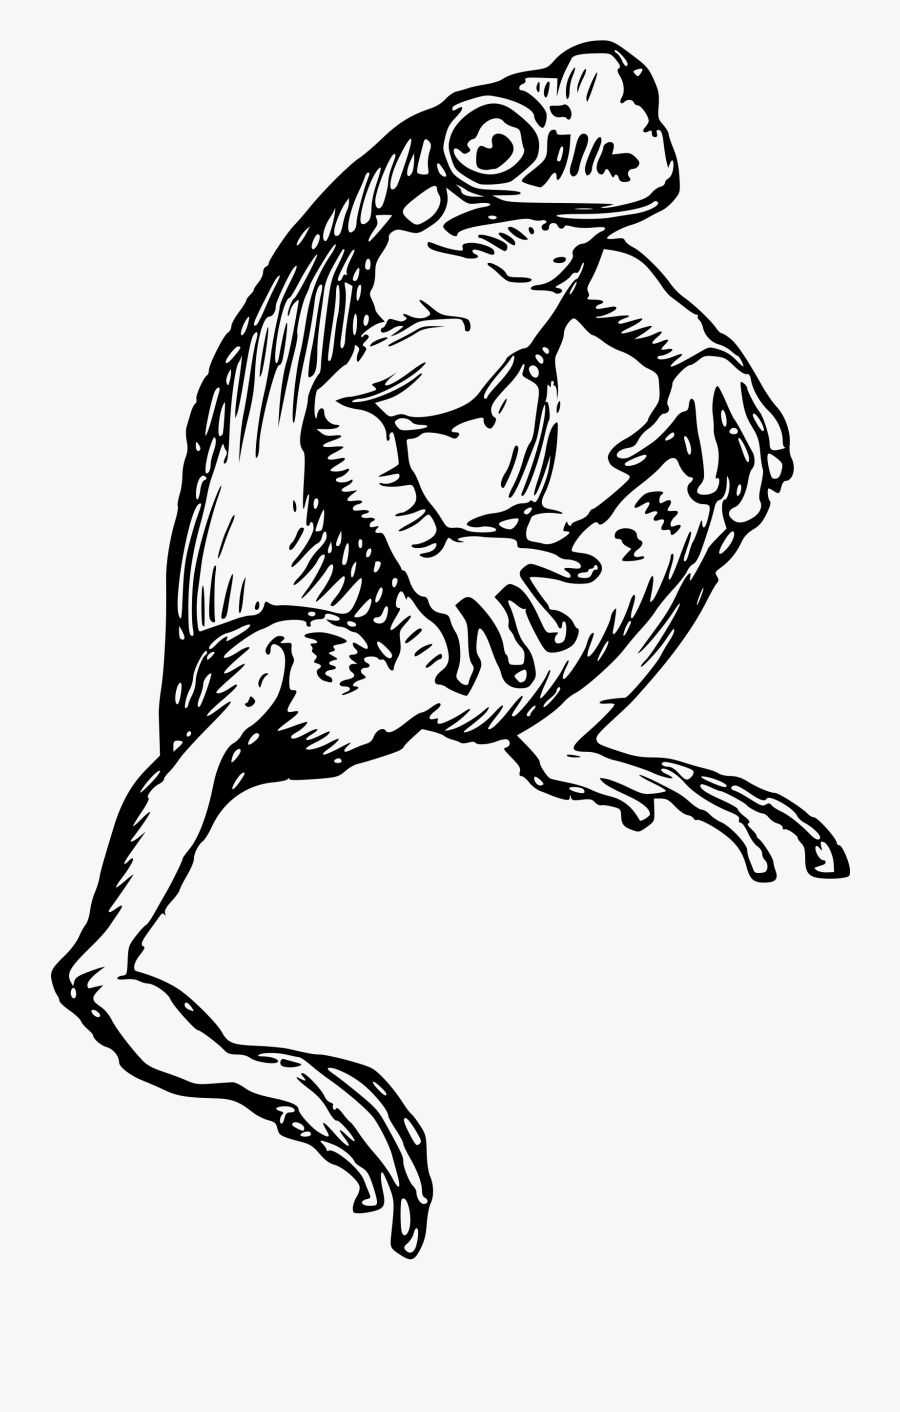 Black And White Bclipart - Drawing Of Frog Black And White, Transparent Clipart